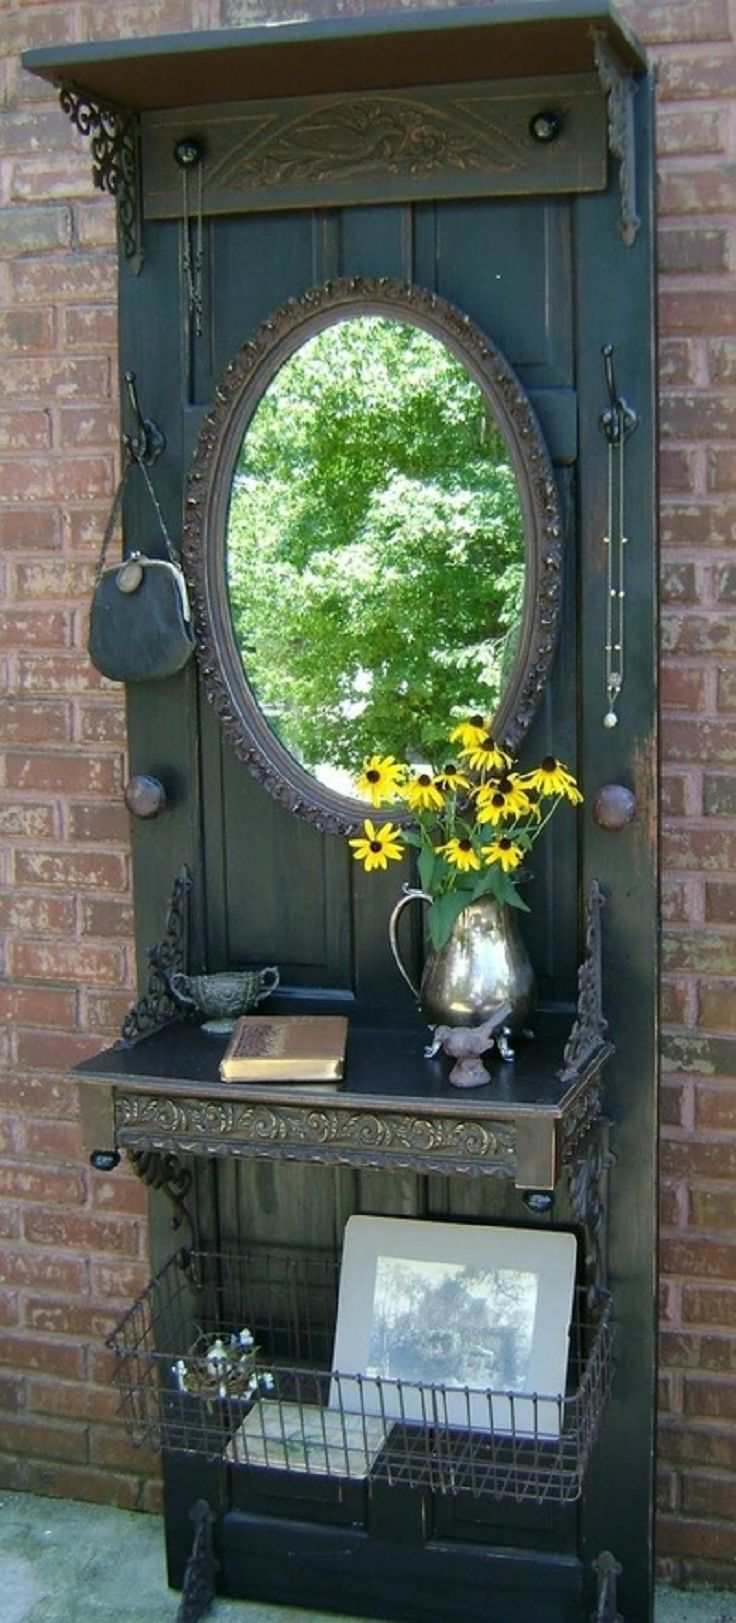 Repurposed Door Projects | From the Garden to the Table - Recipes for Life | Pinterest | Doors, Old doors and Salvaged doors